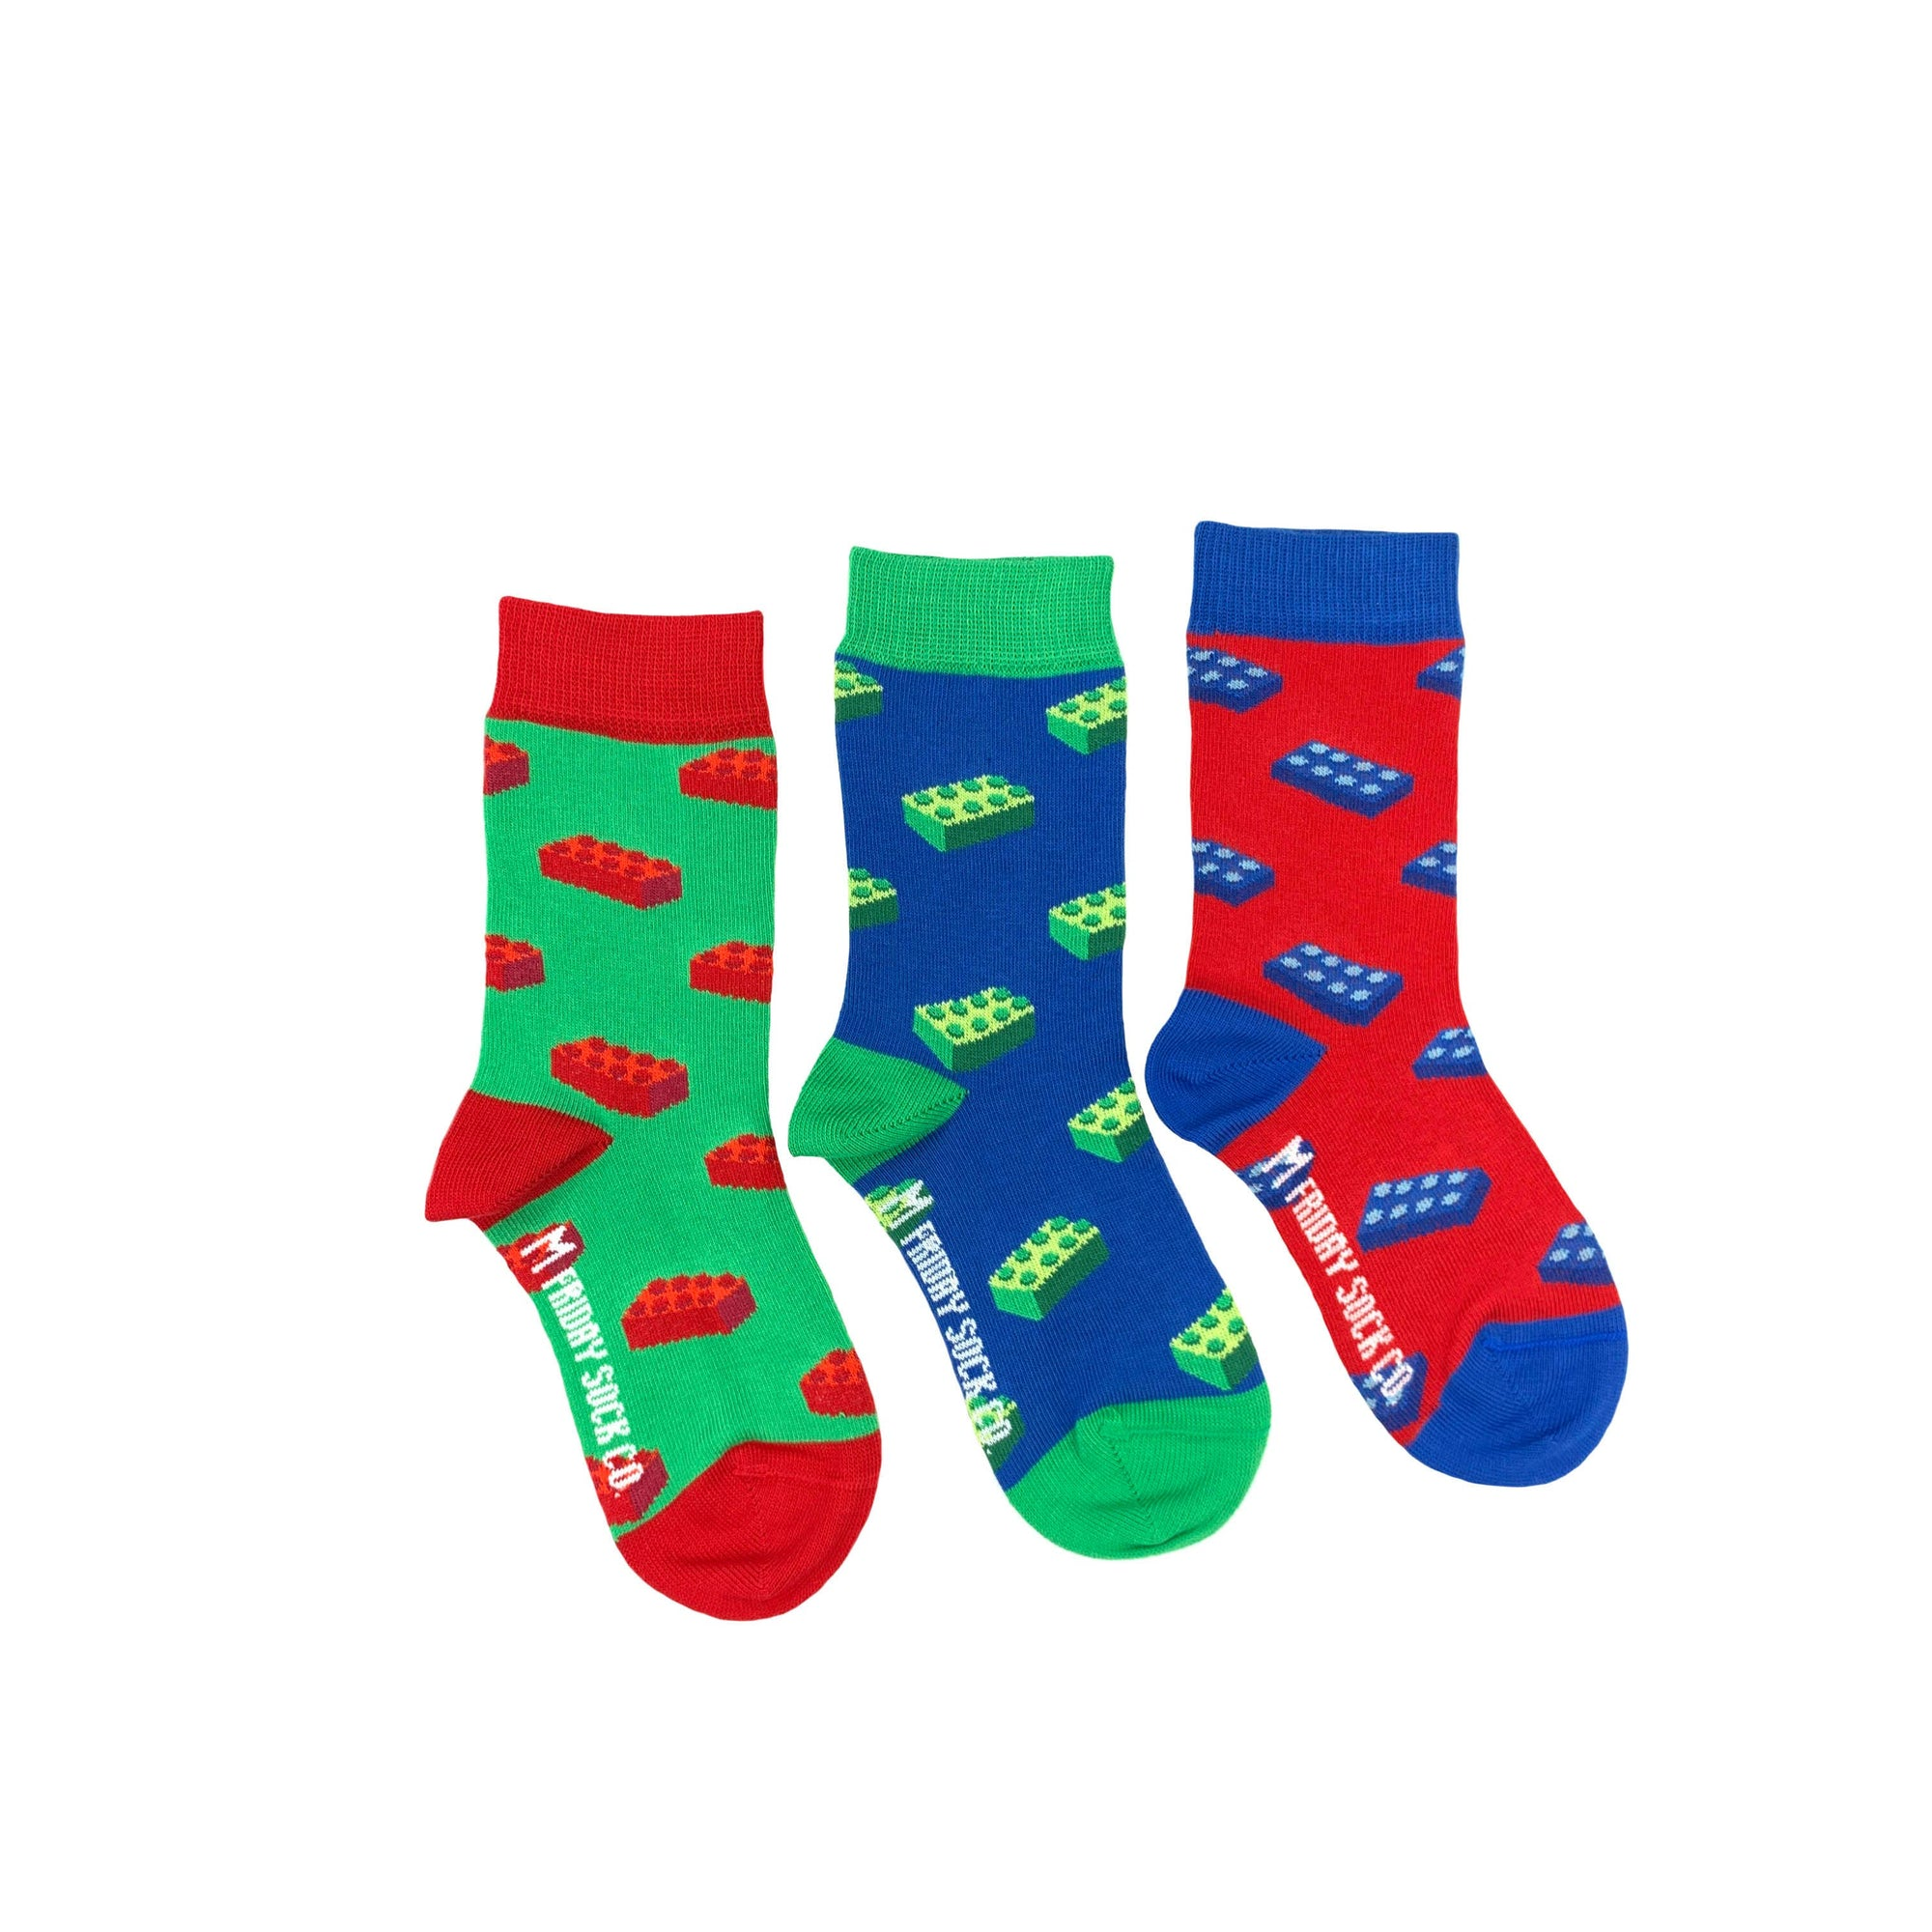 Friday Sock Co. Kid's Socks | Building Blocks | Mismatched